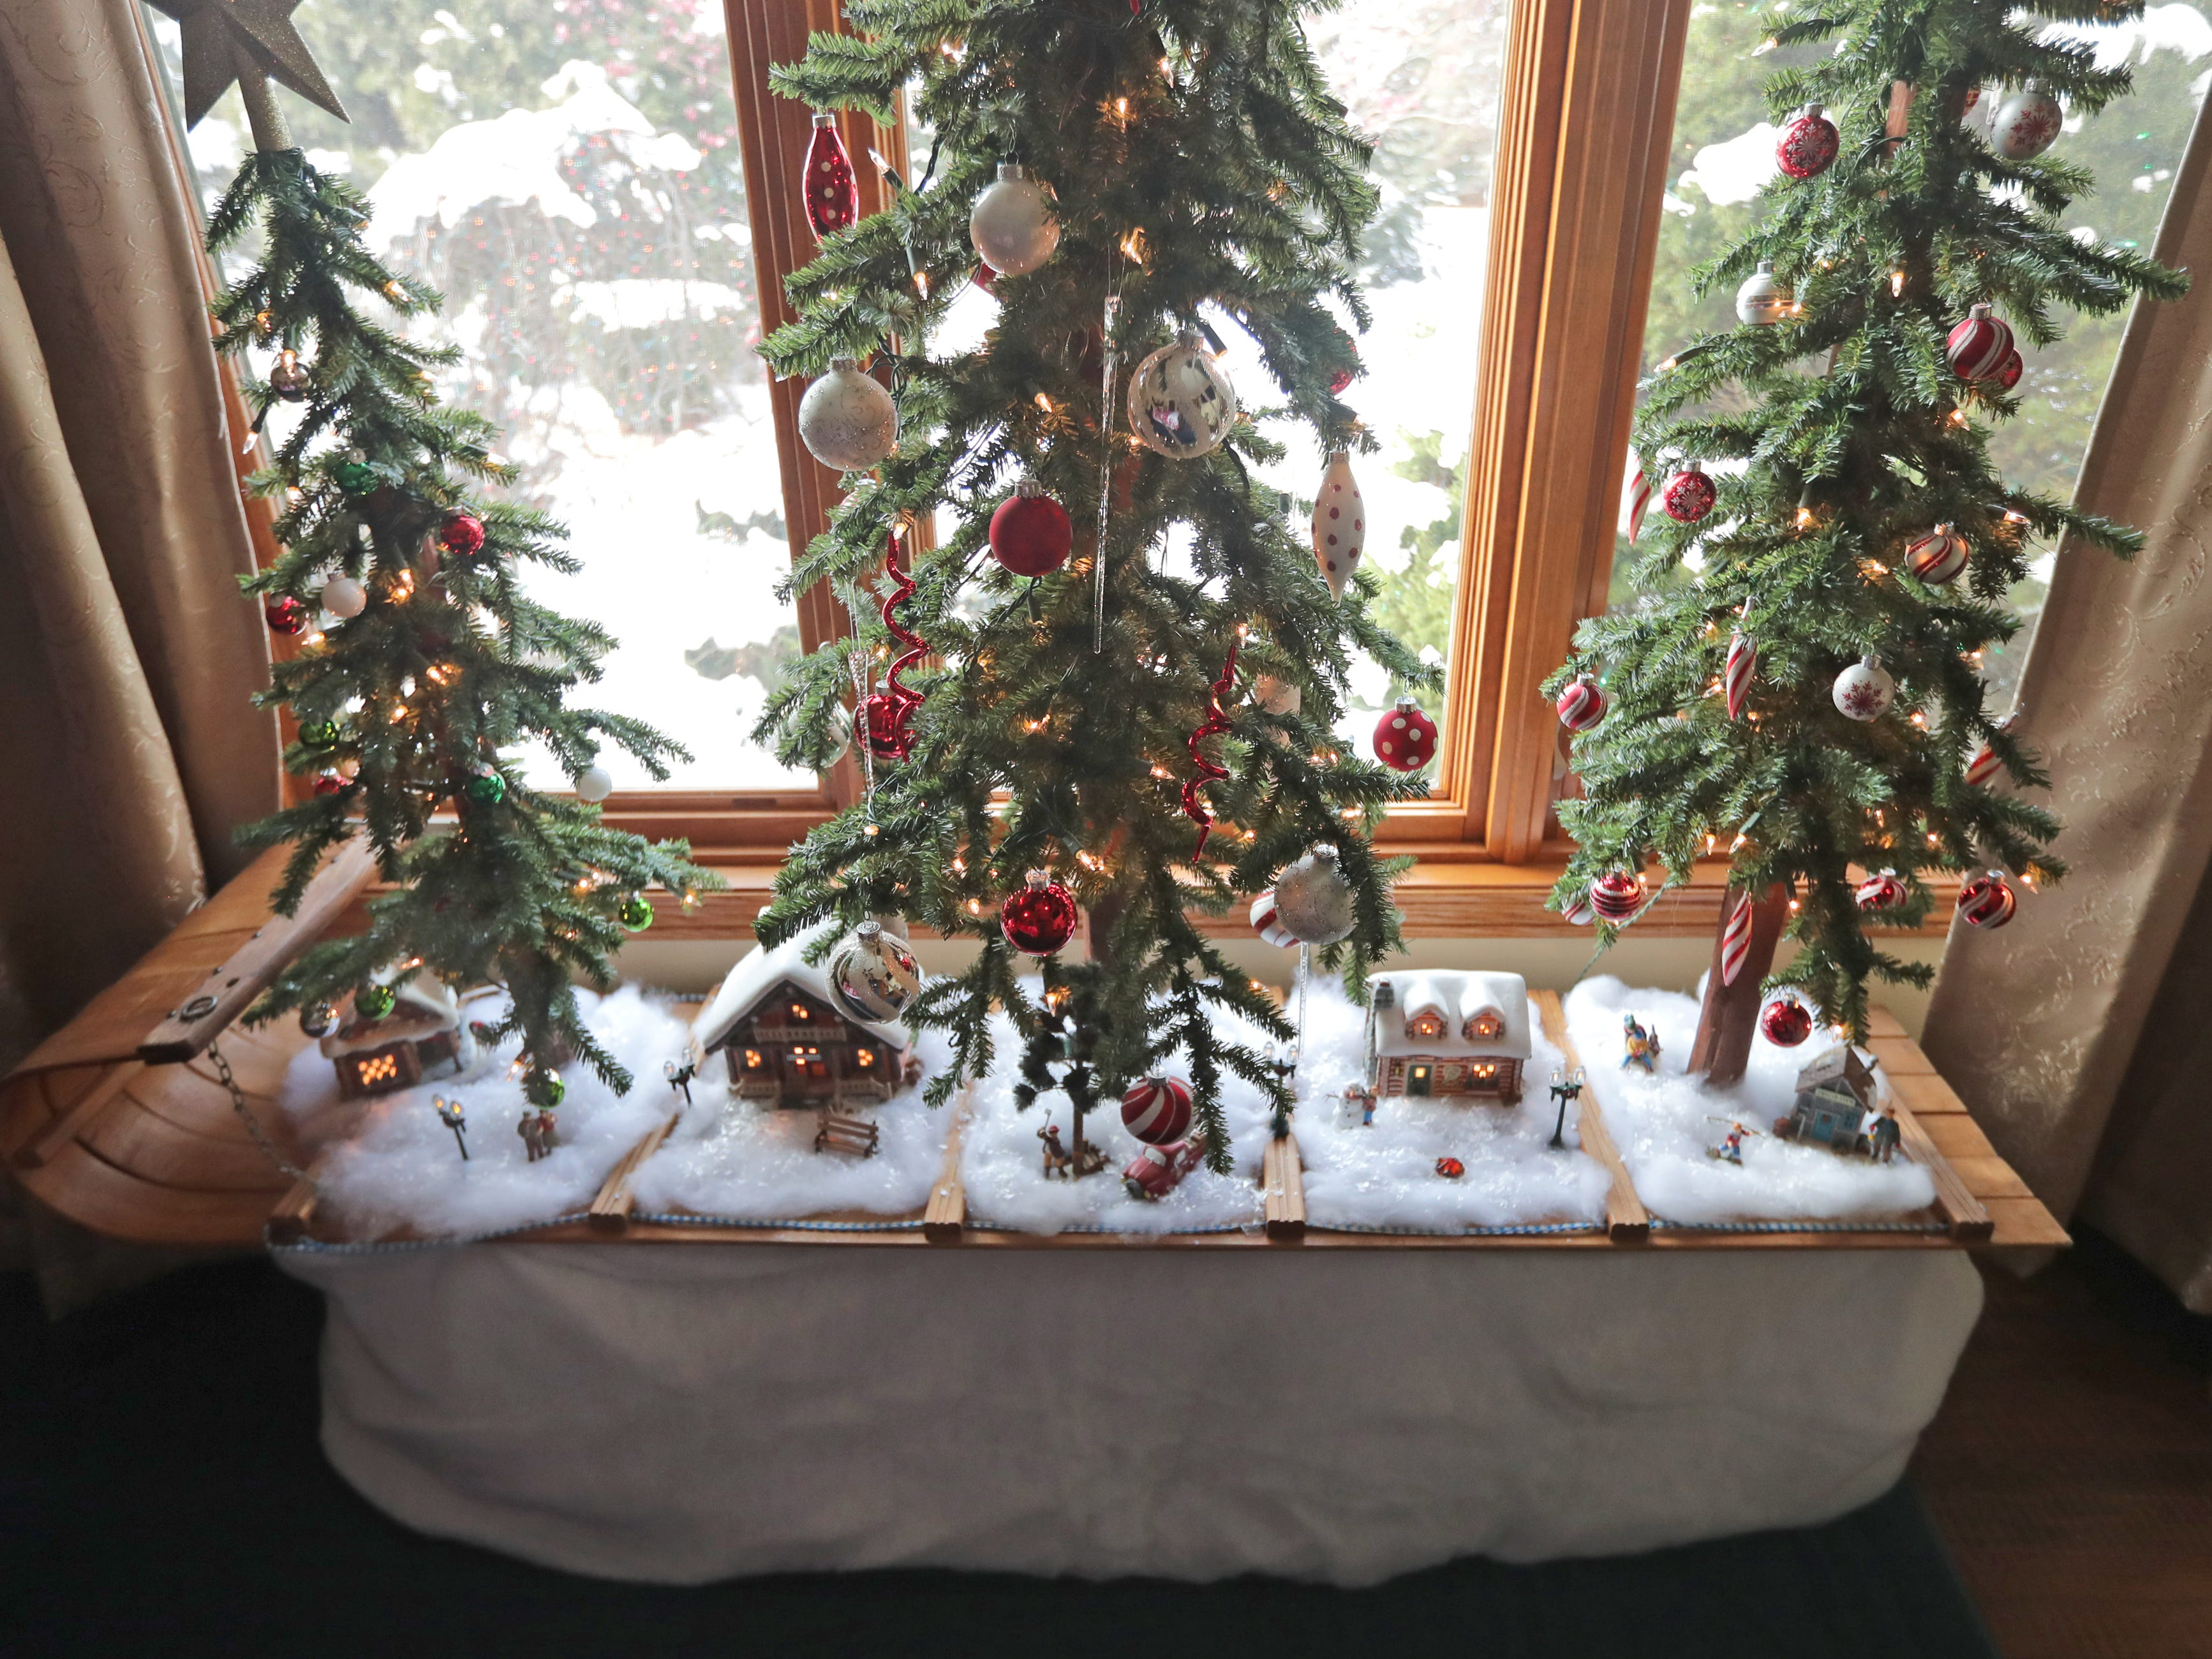 Smaller trees and a Christmas village are displayed on an old toboggan in the guest bedroom on the first floor.